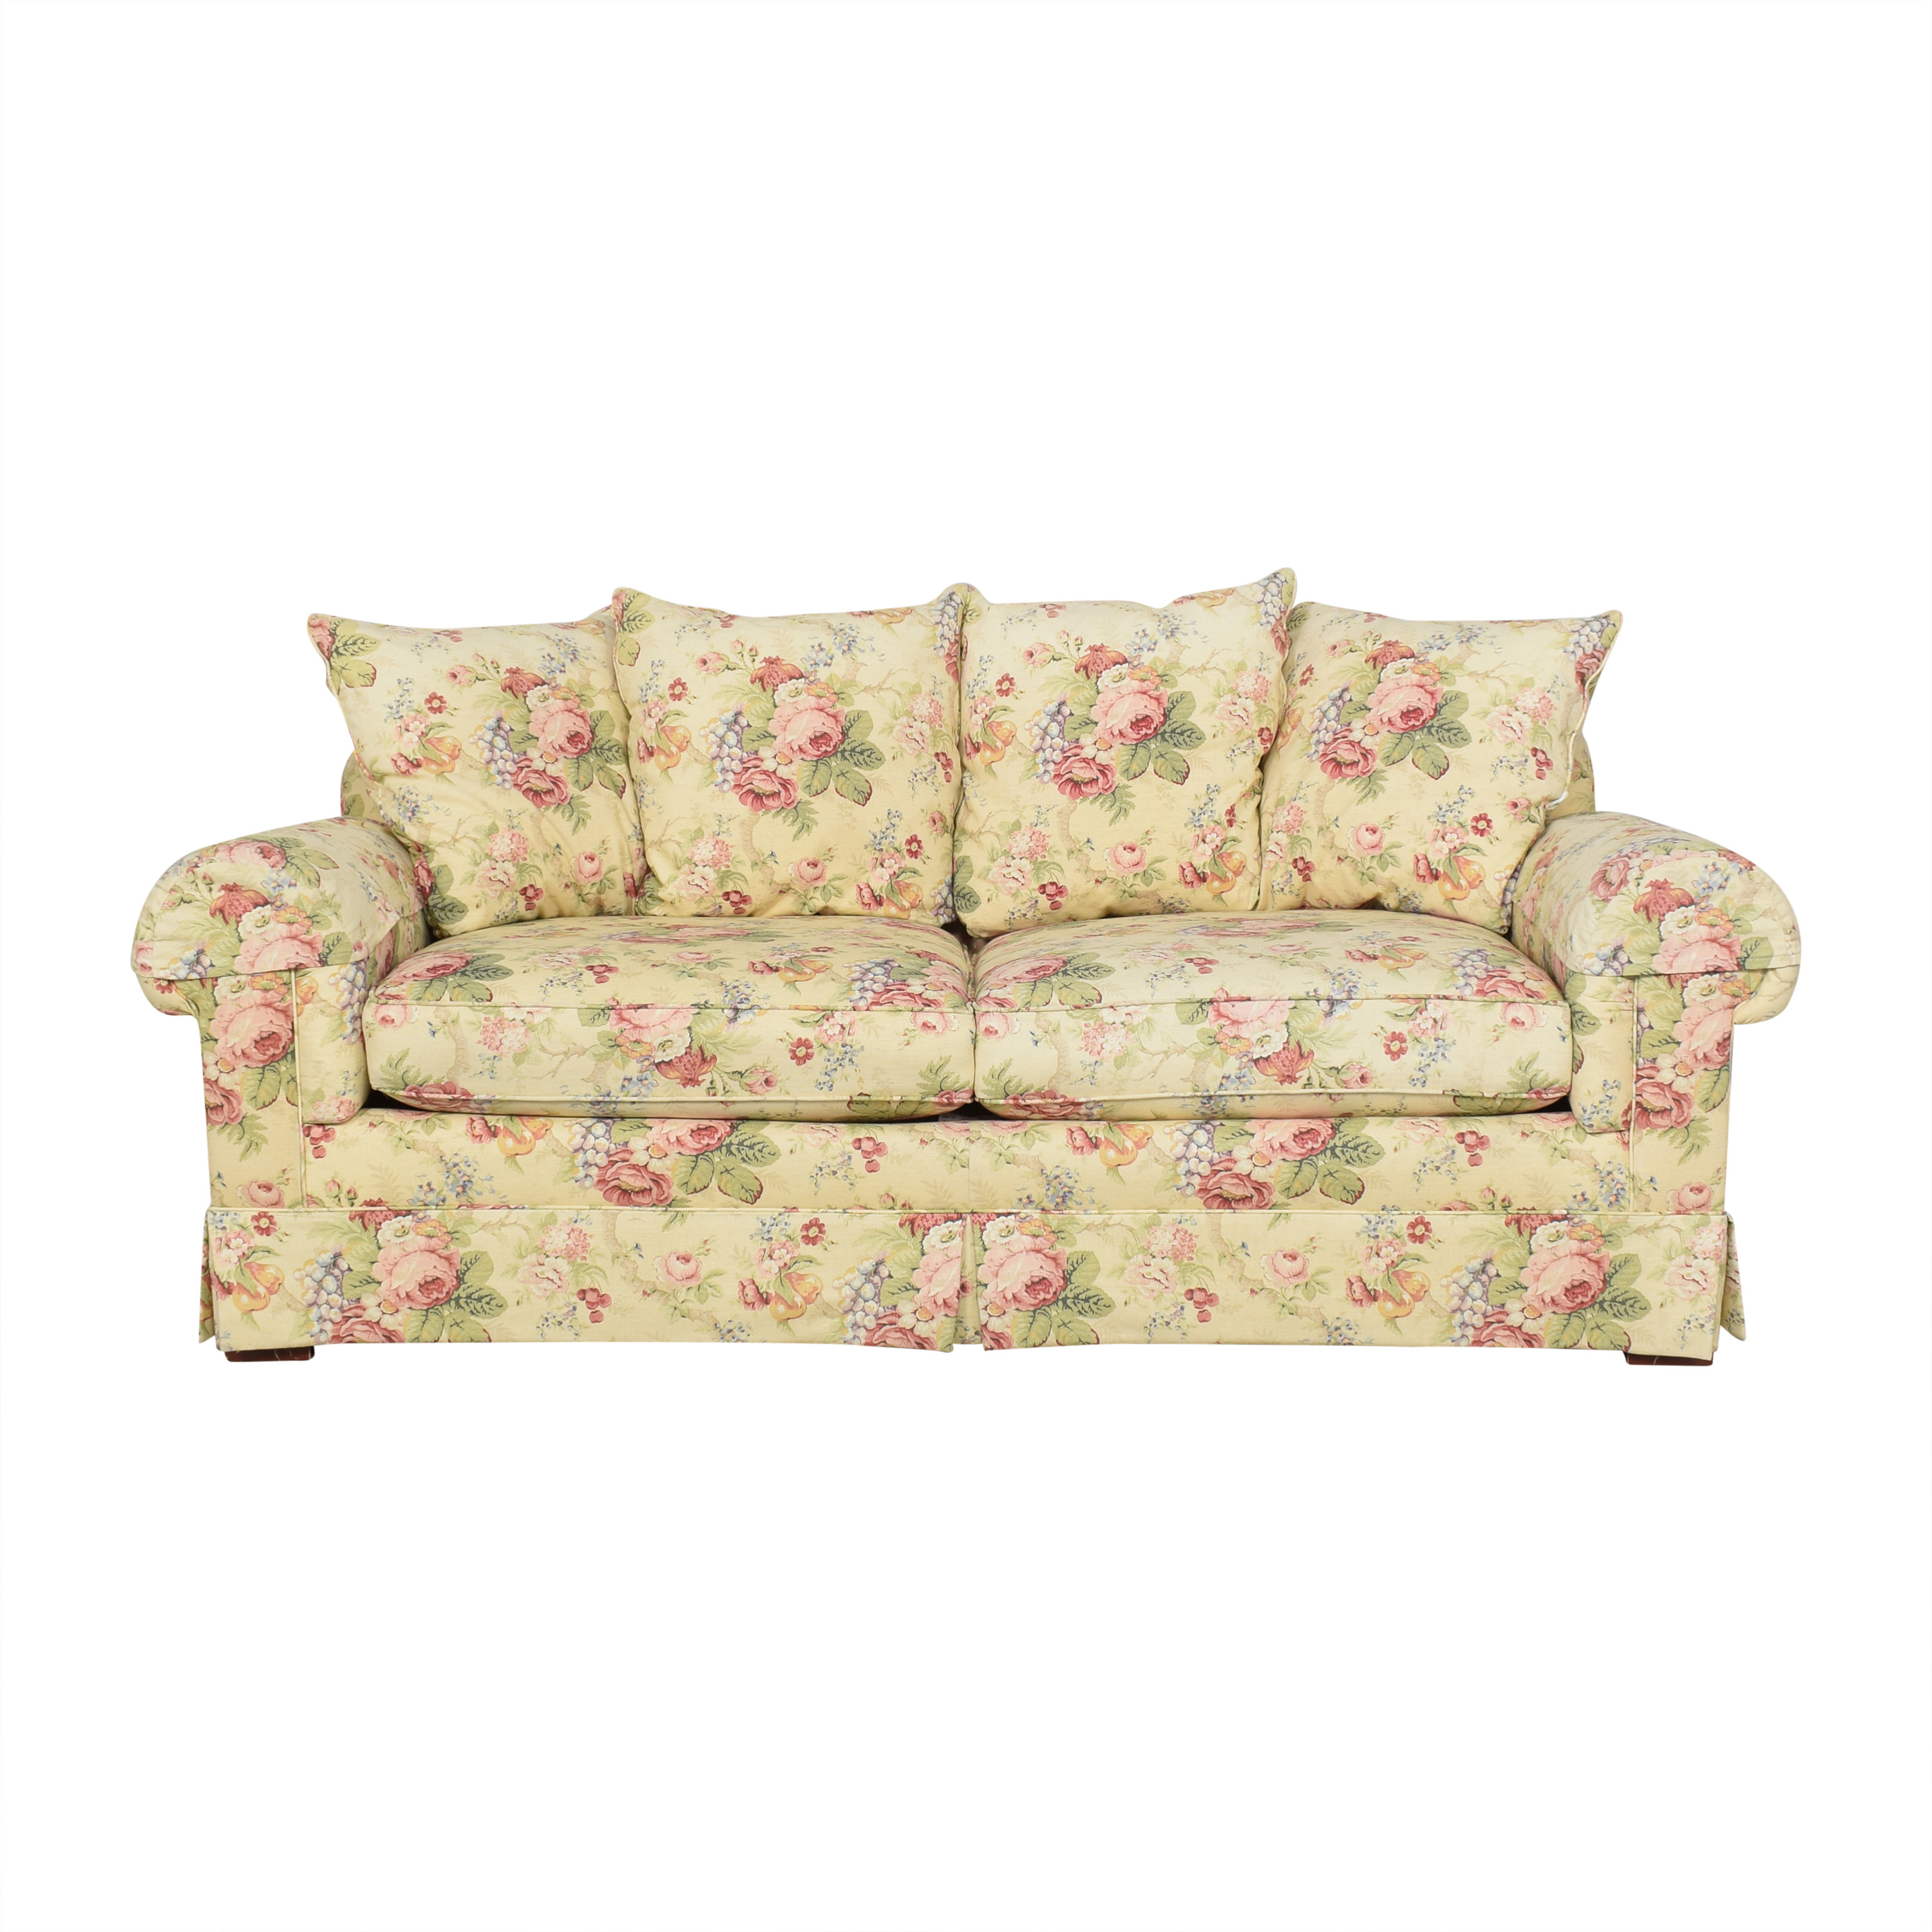 Floral Two Cushion Sofa coupon